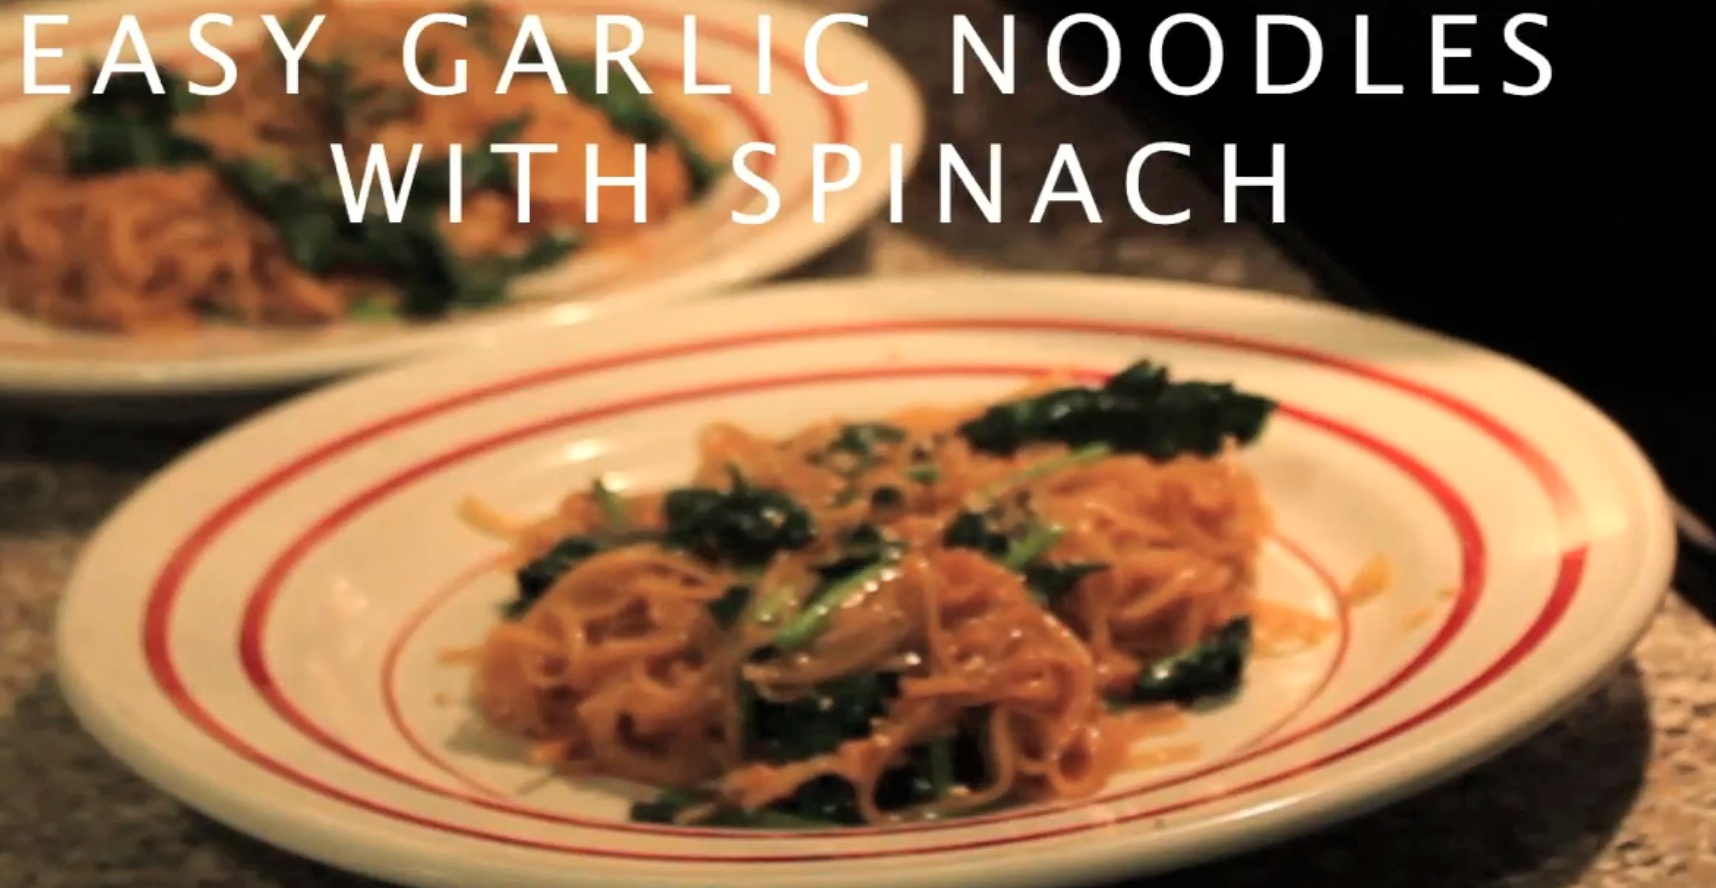 Quick and Easy Garlic Noodles with Spinach